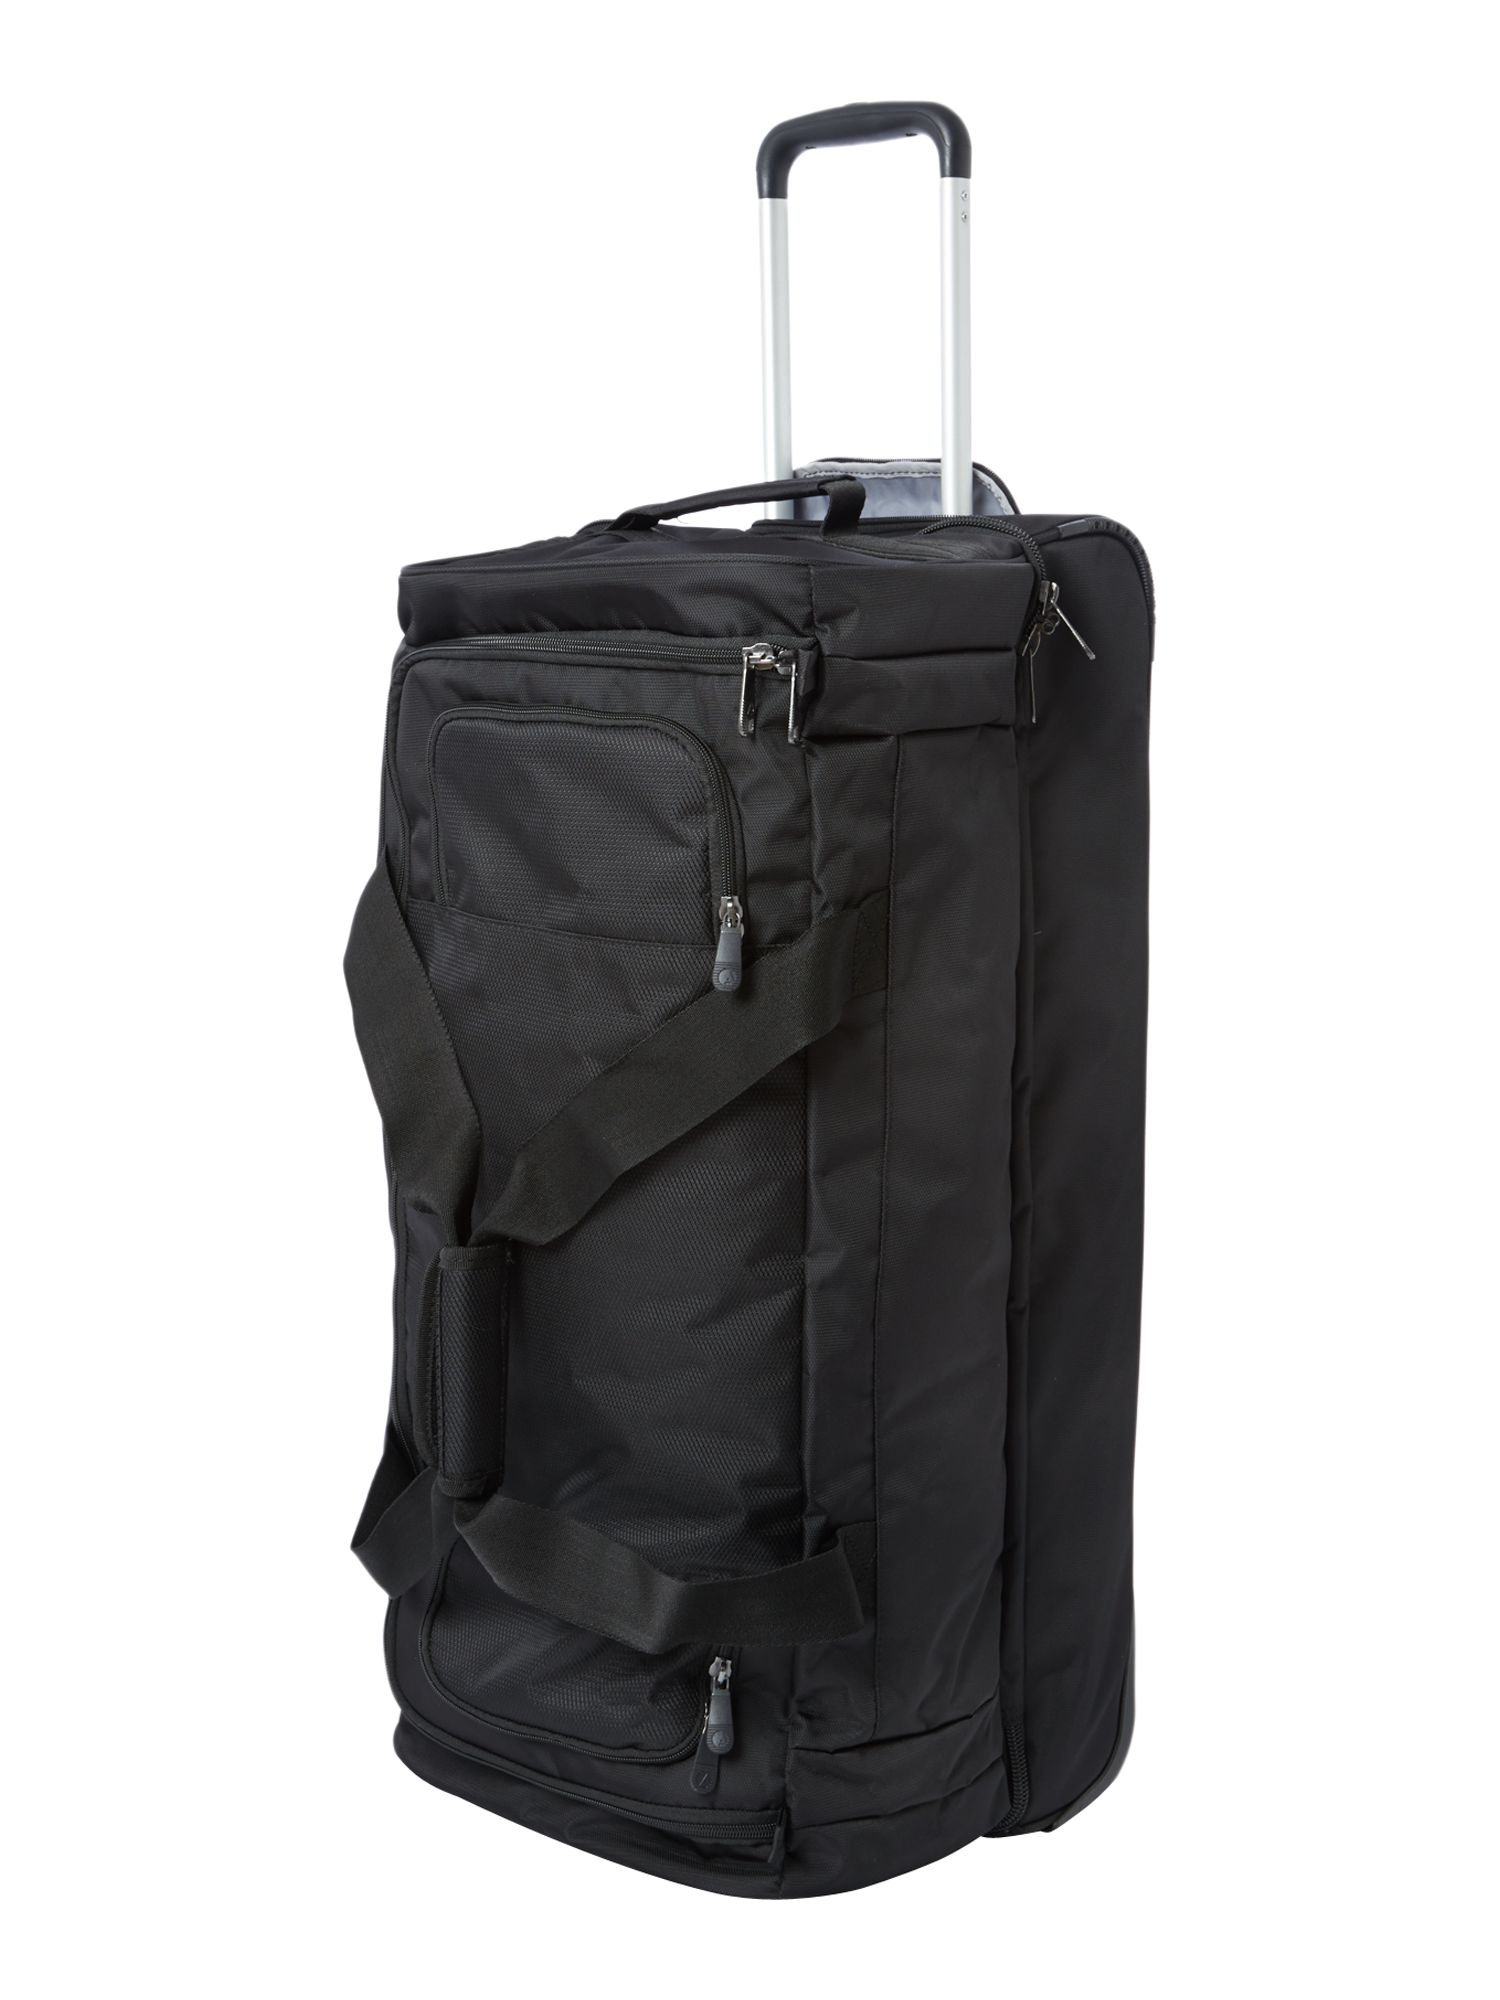 Cyberlite casual double deck trolley duffle